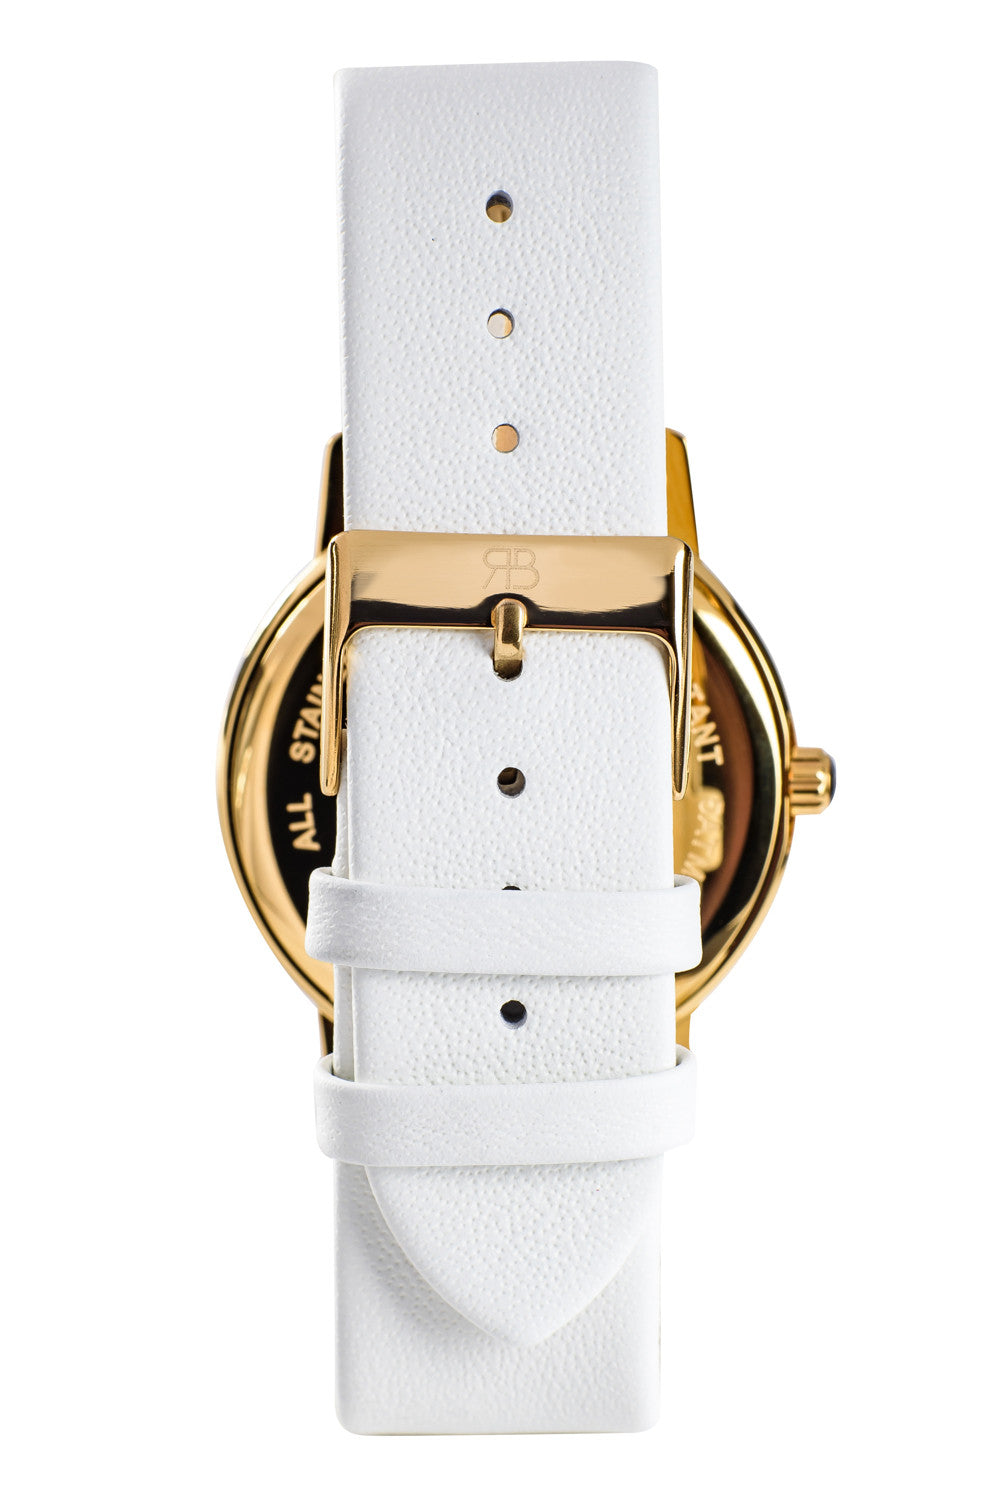 Gold Rossbanna Cornice watch with white strap, minimal, elegant, timeless, unique timepiece 05